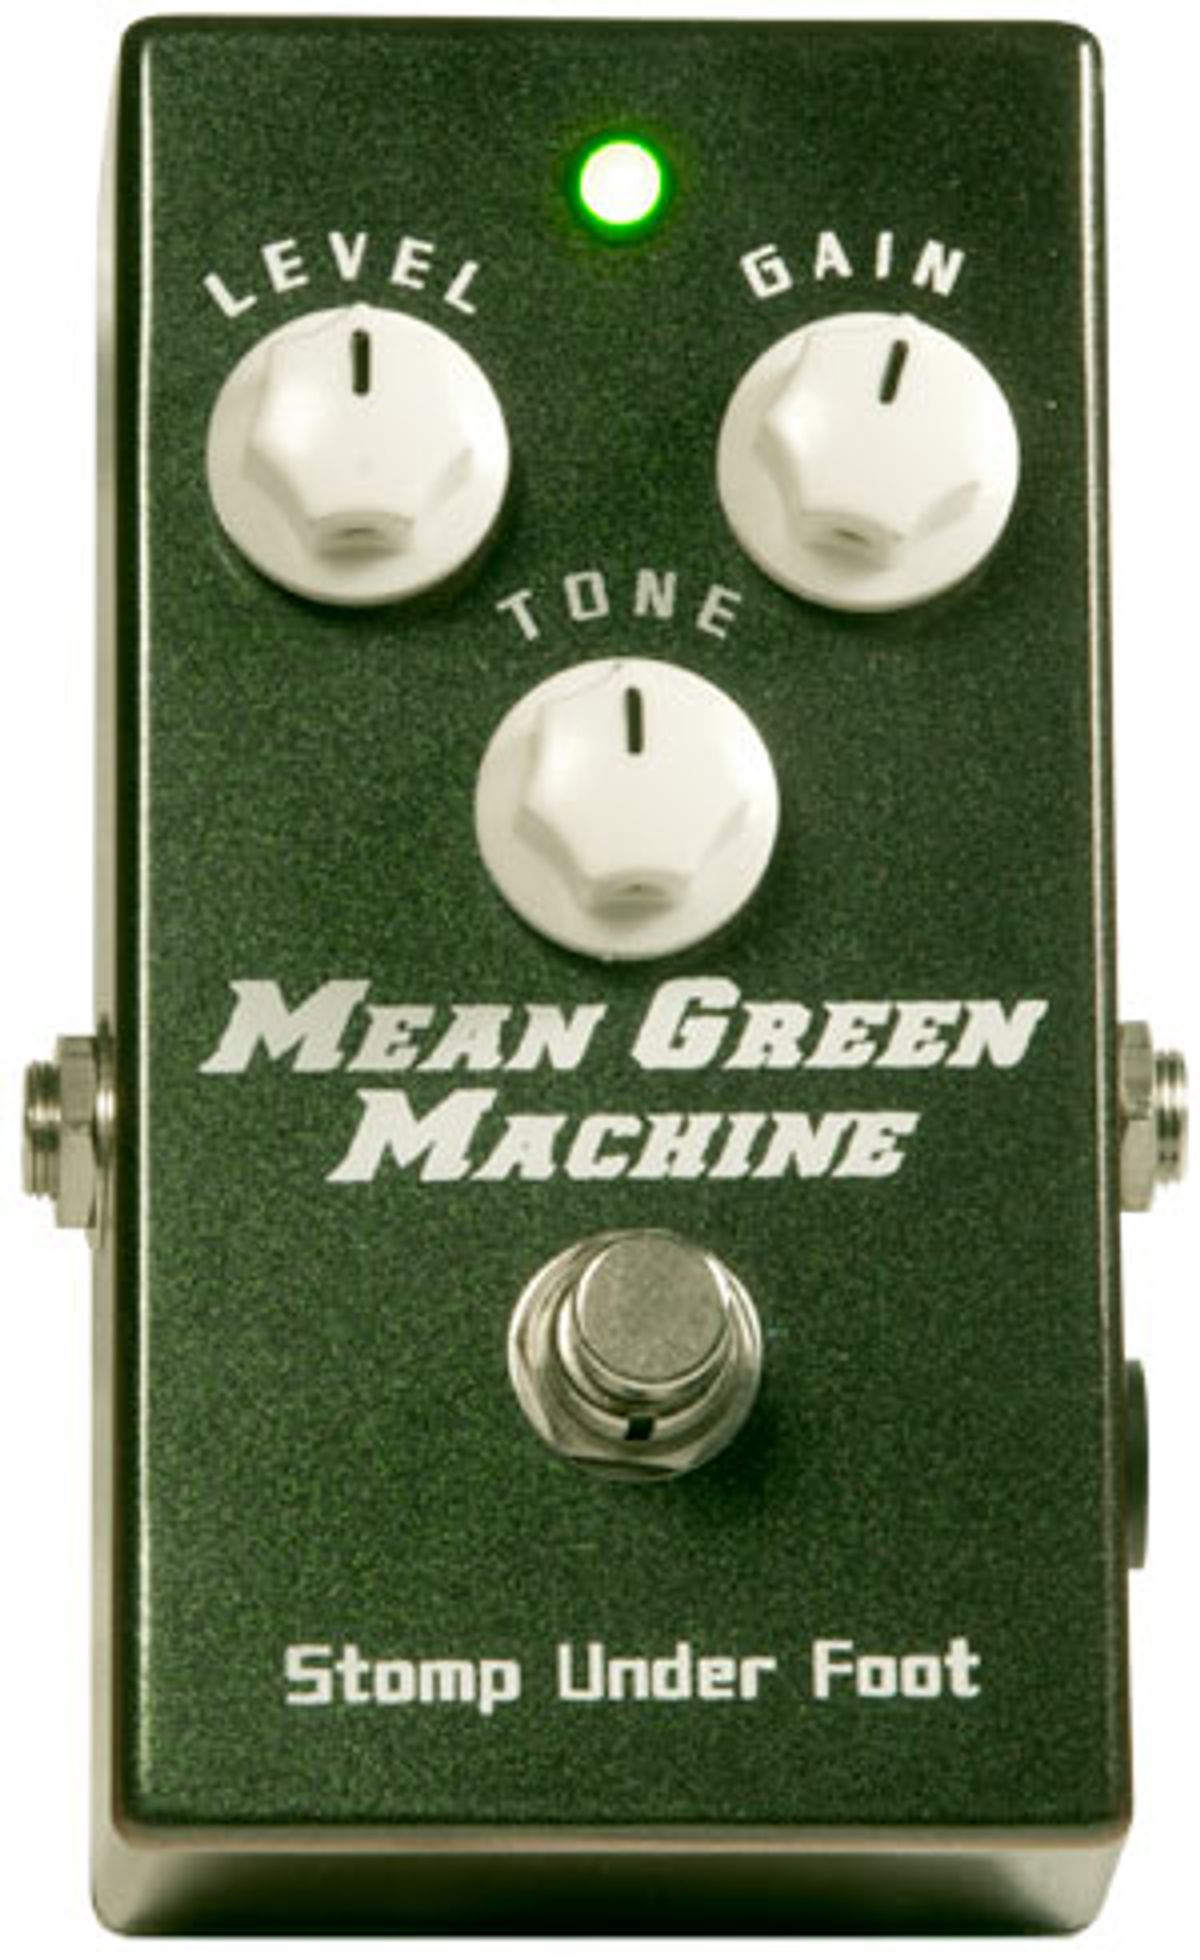 Stomp Under Foot Mean Green Machine Pedal Review